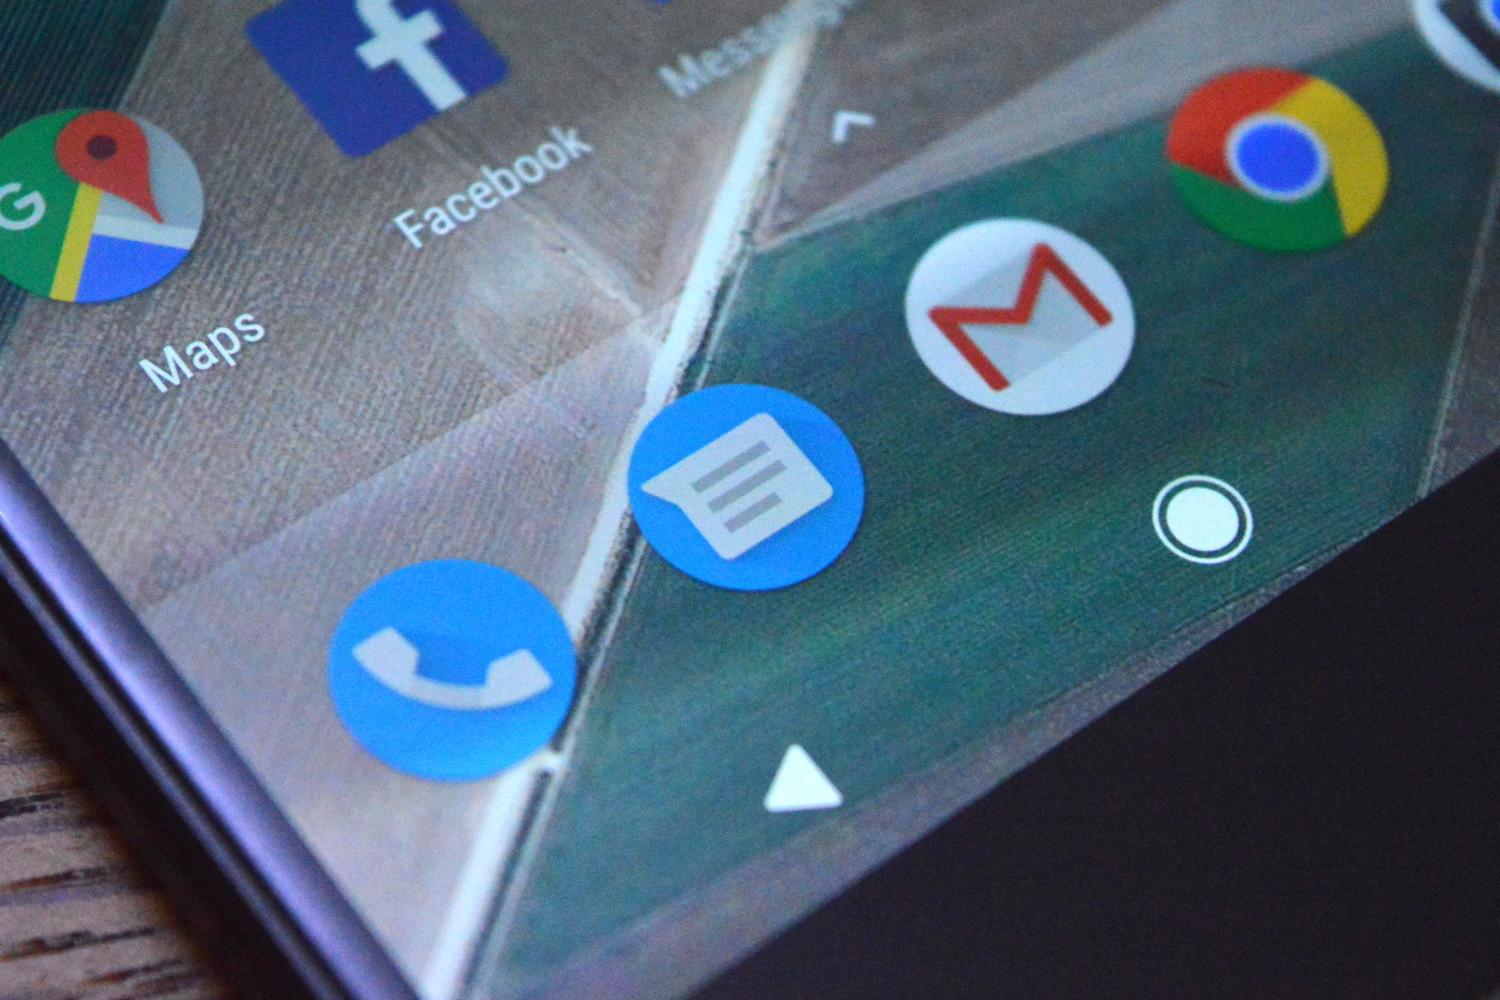 Google Messenger 2.0 brings unread message badges — on certain Android devices